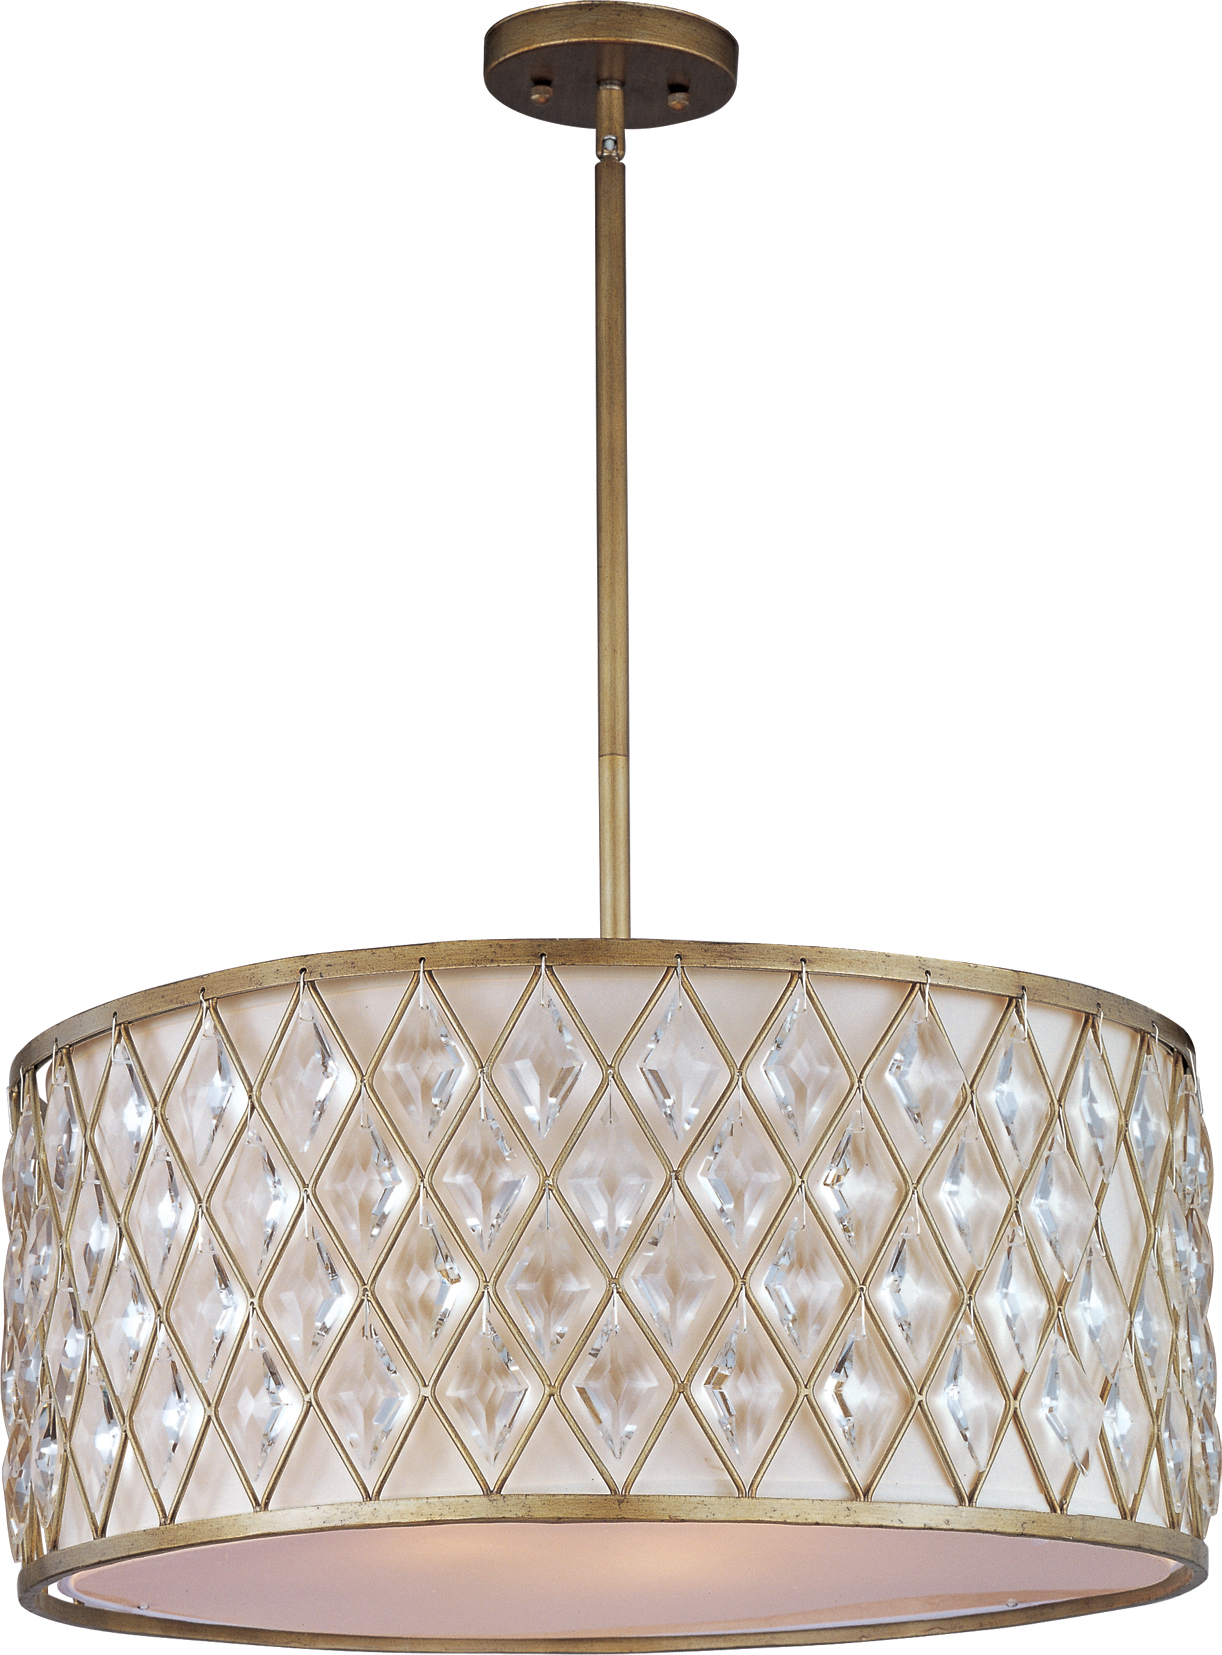 Diamond Pendant | Maxim Lighting